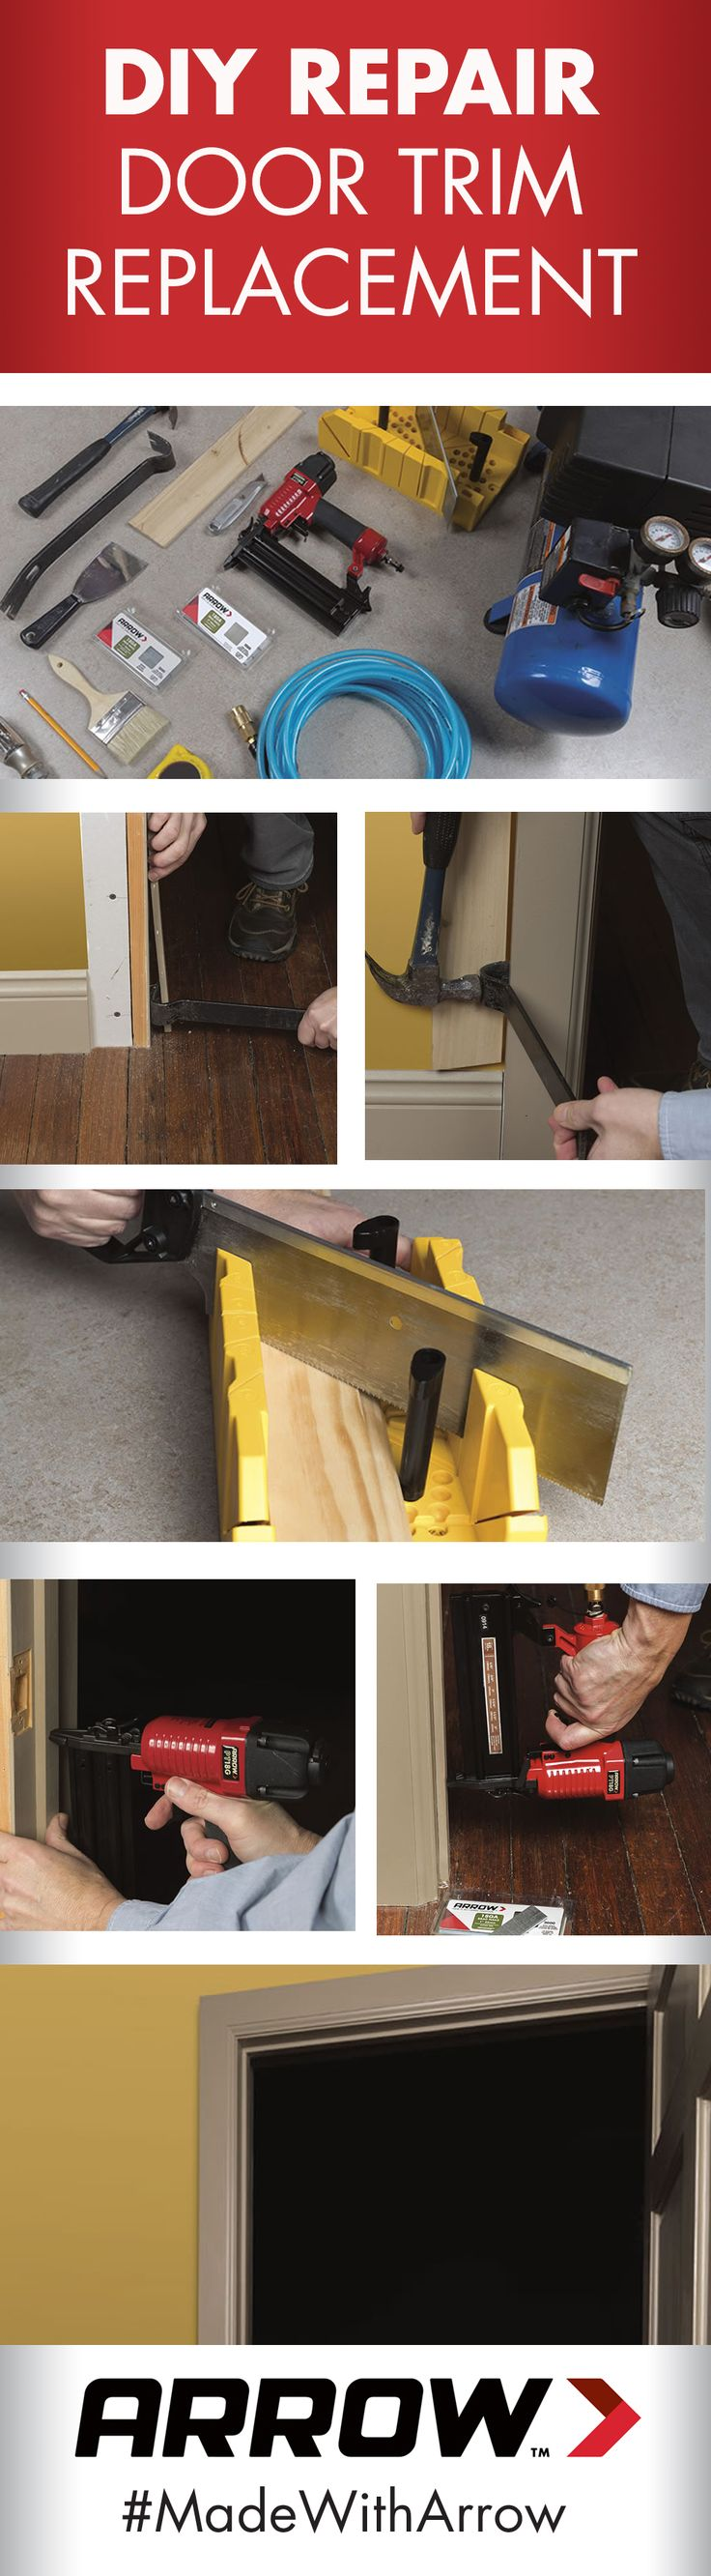 Learn how to replace damaged door trim and stop with Arrow's PT18G Pneumatic Brad Nailer. www.arrowfastener.com